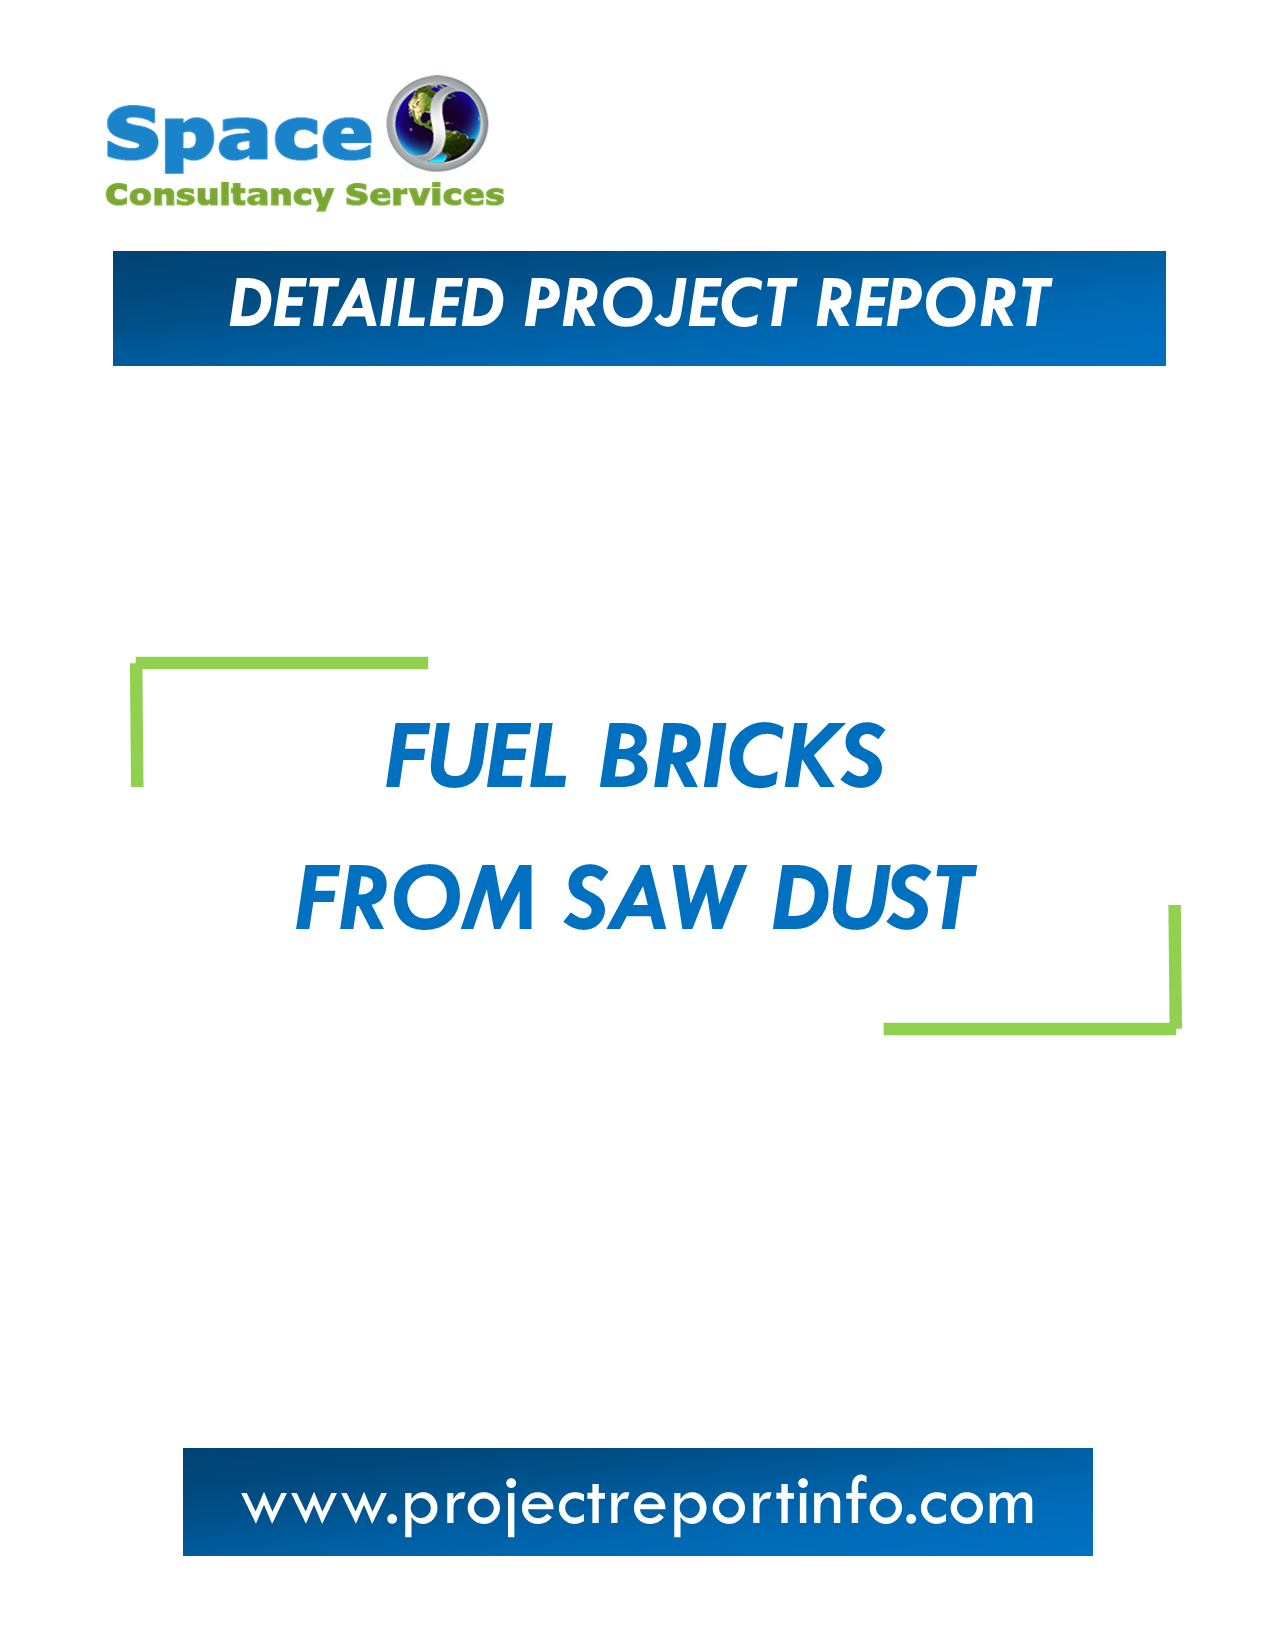 Project Report on Fuel Bricks from Saw Dust Manufacturing